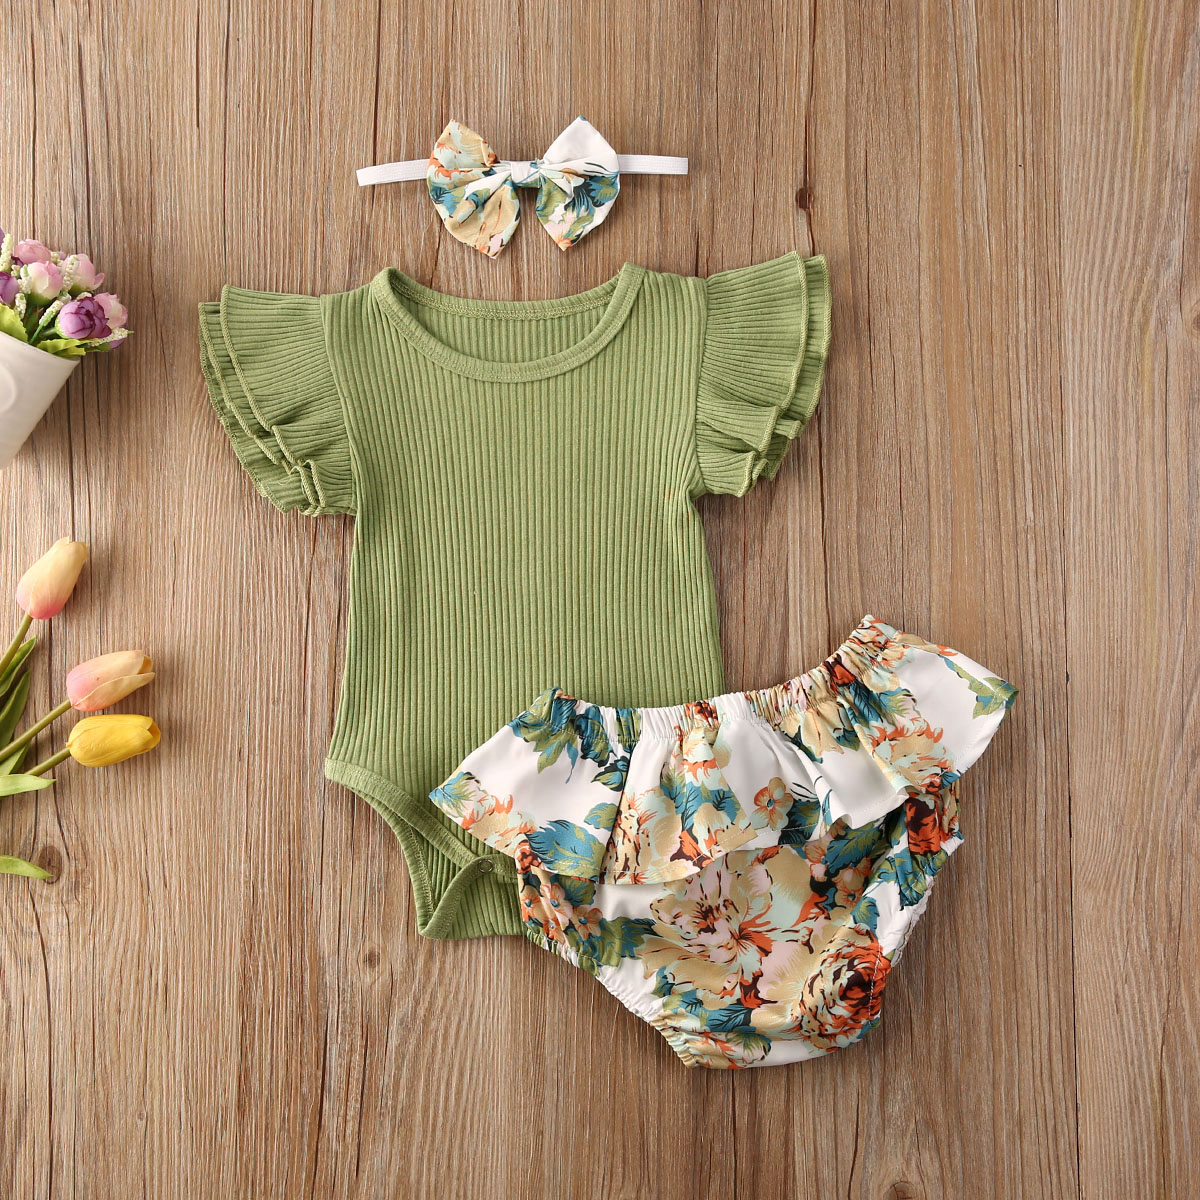 Emmababy Newborn Baby Girl Clothes Solid Color Fly Sleeve Romper Tops Ruffle Flower Print Shorts Headband 3Pcs Outfits Clothes